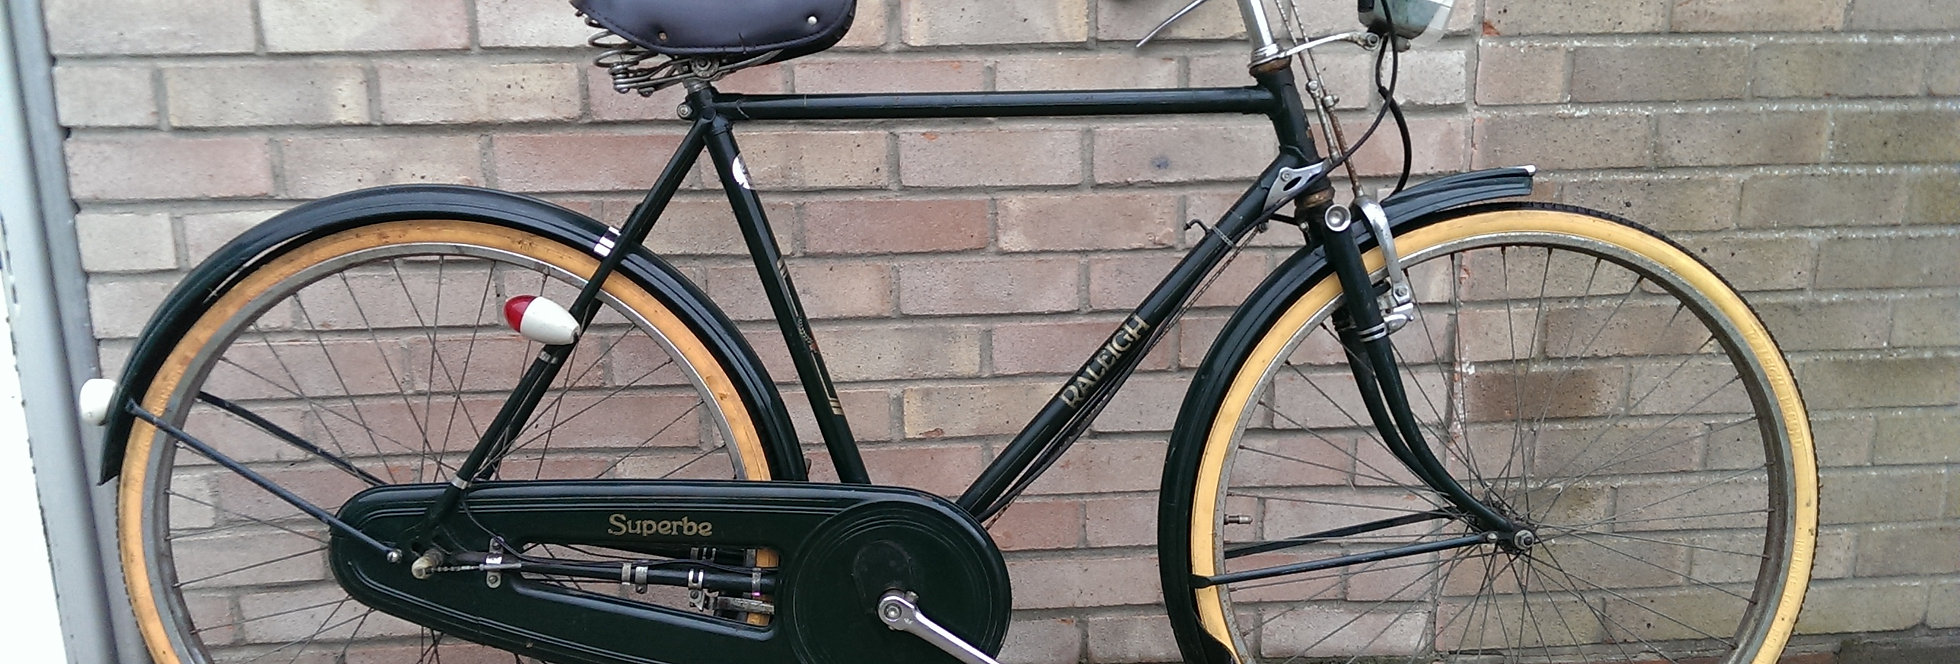 value of old raleigh bikes